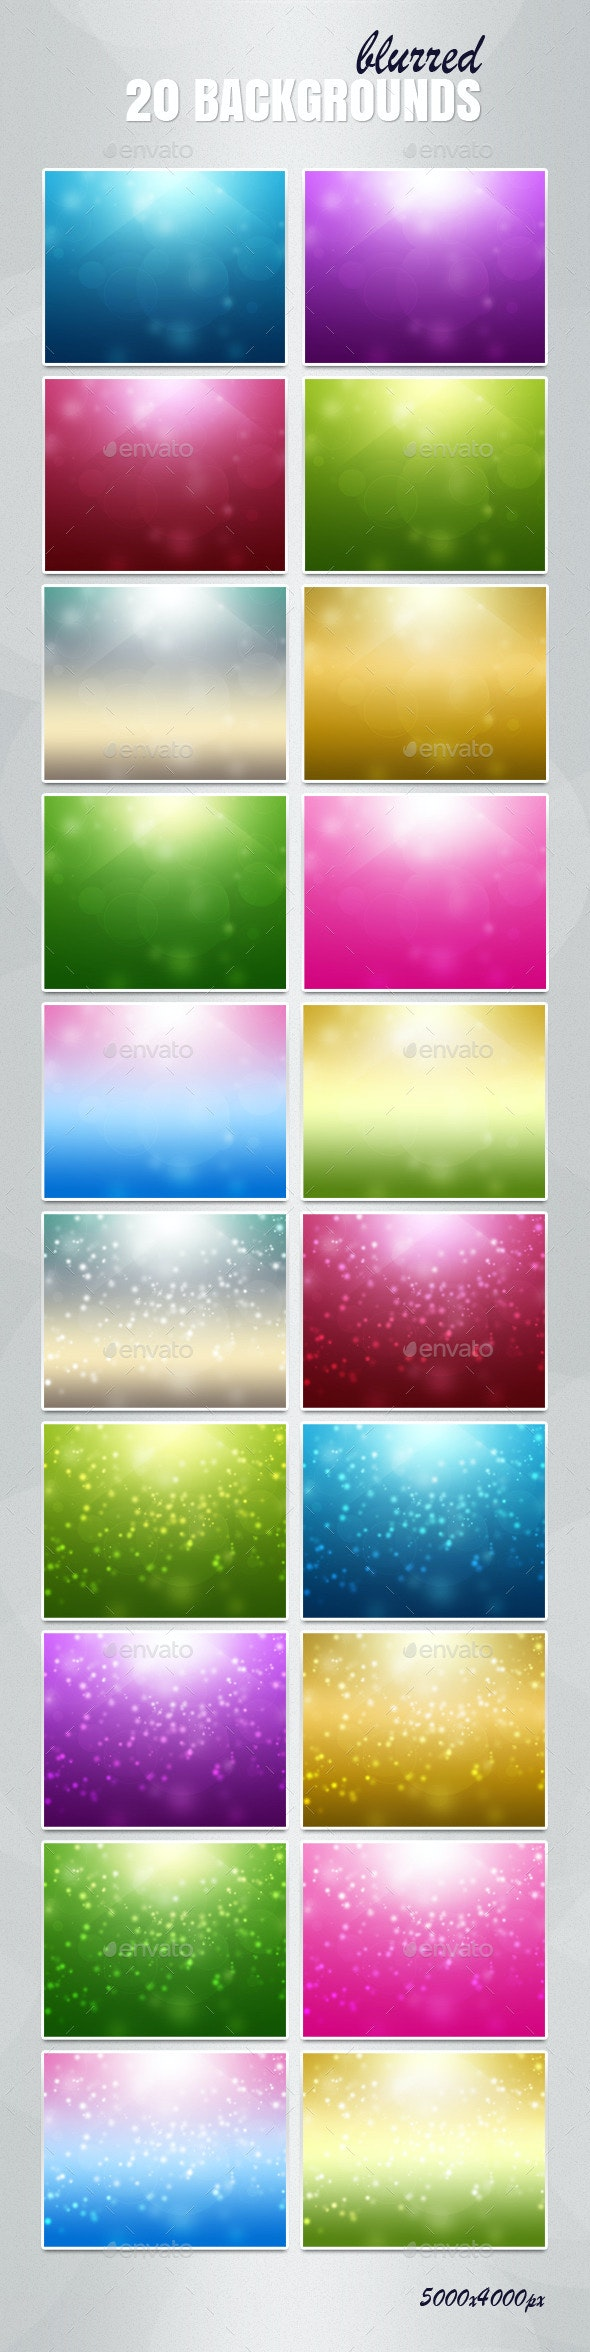 20 Backgrounds Blurred - Abstract Backgrounds